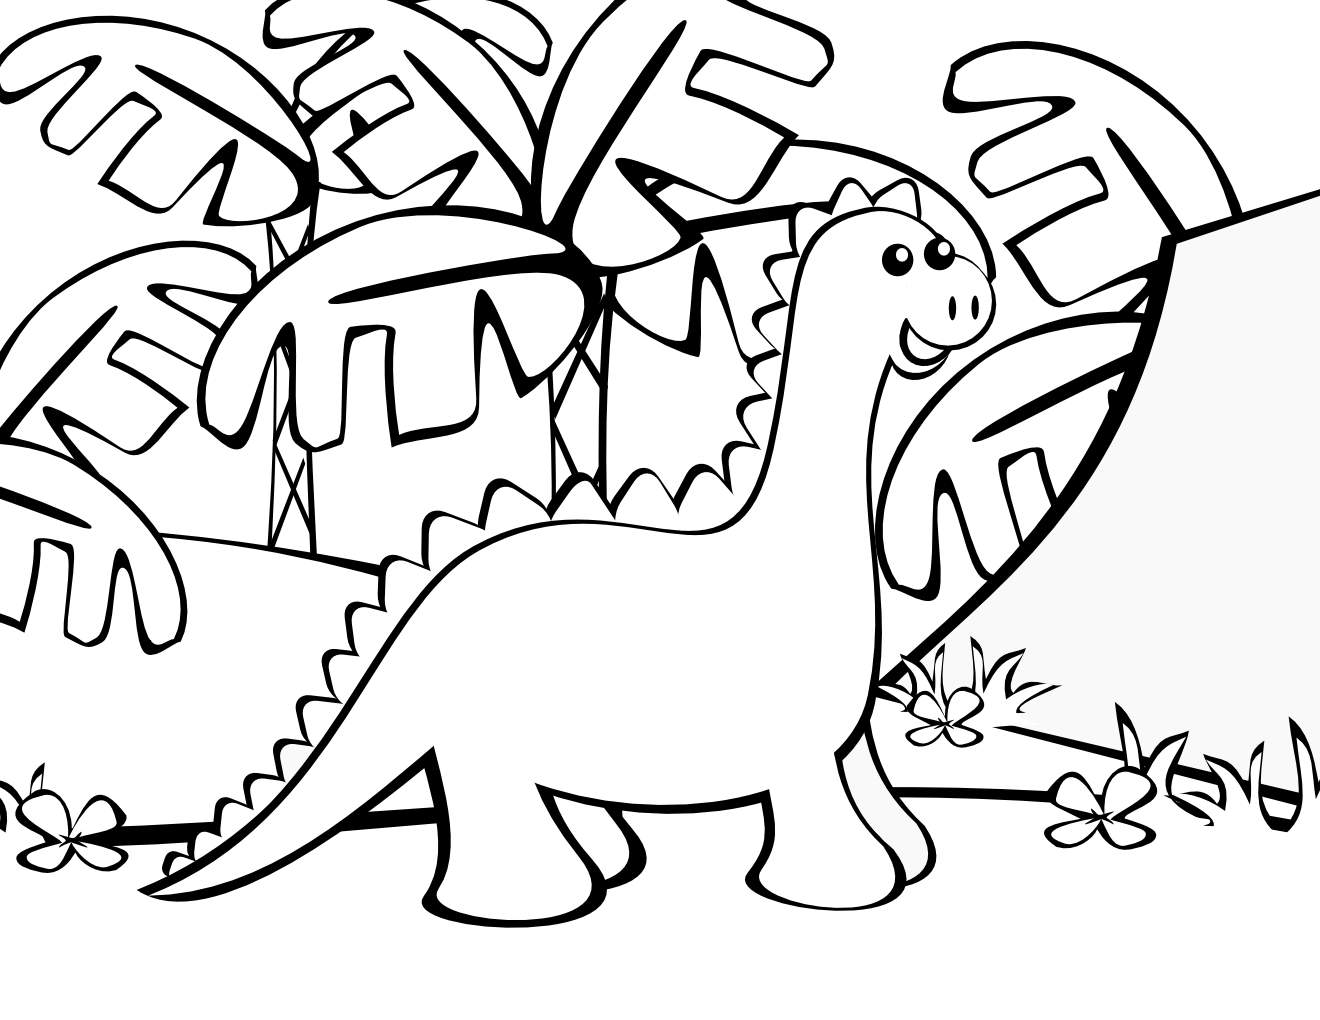 free printable coloring pages of dinosaurs printable coloring pages dinosaur coloring pages printable dinosaurs pages coloring of free